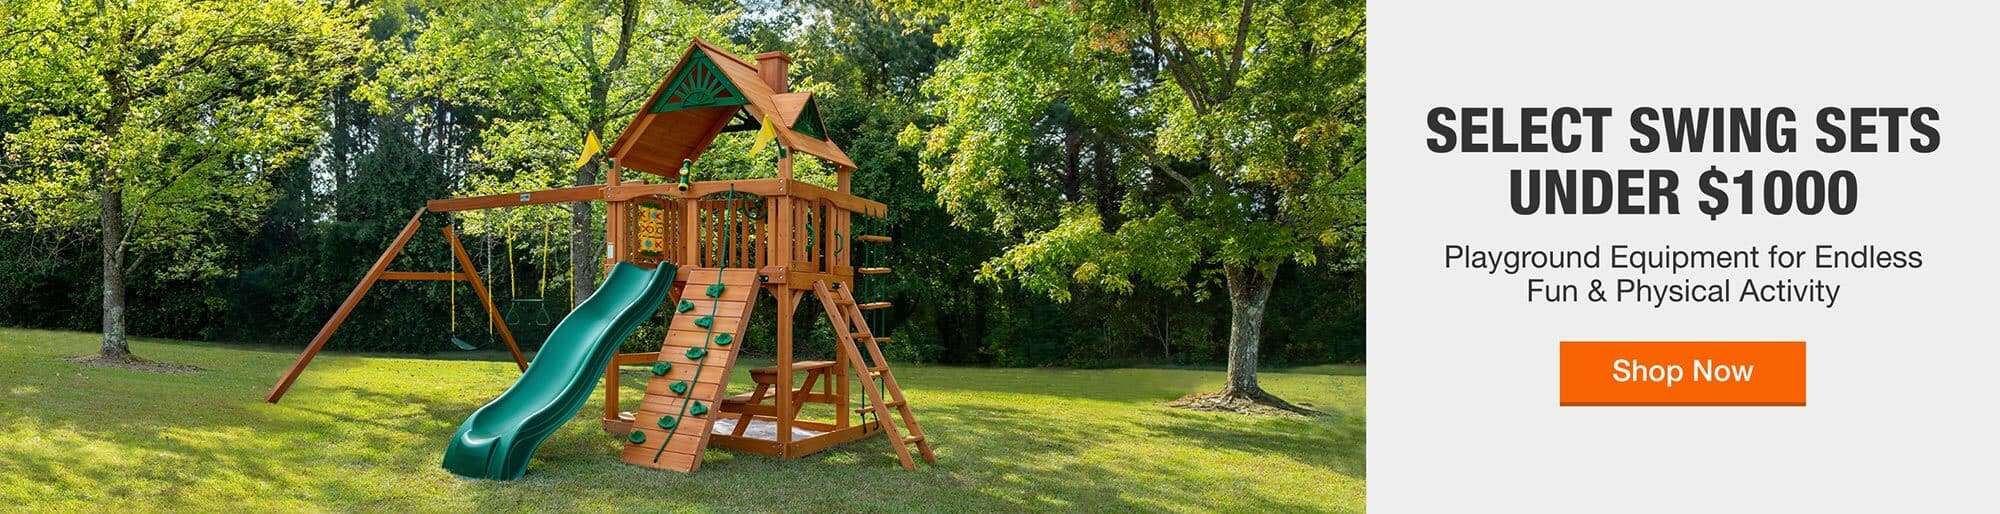 SELECT SWING SETS UNDER $1000 - Playground Equipment For Endless Fun & Physical Activity > SHOP NOW